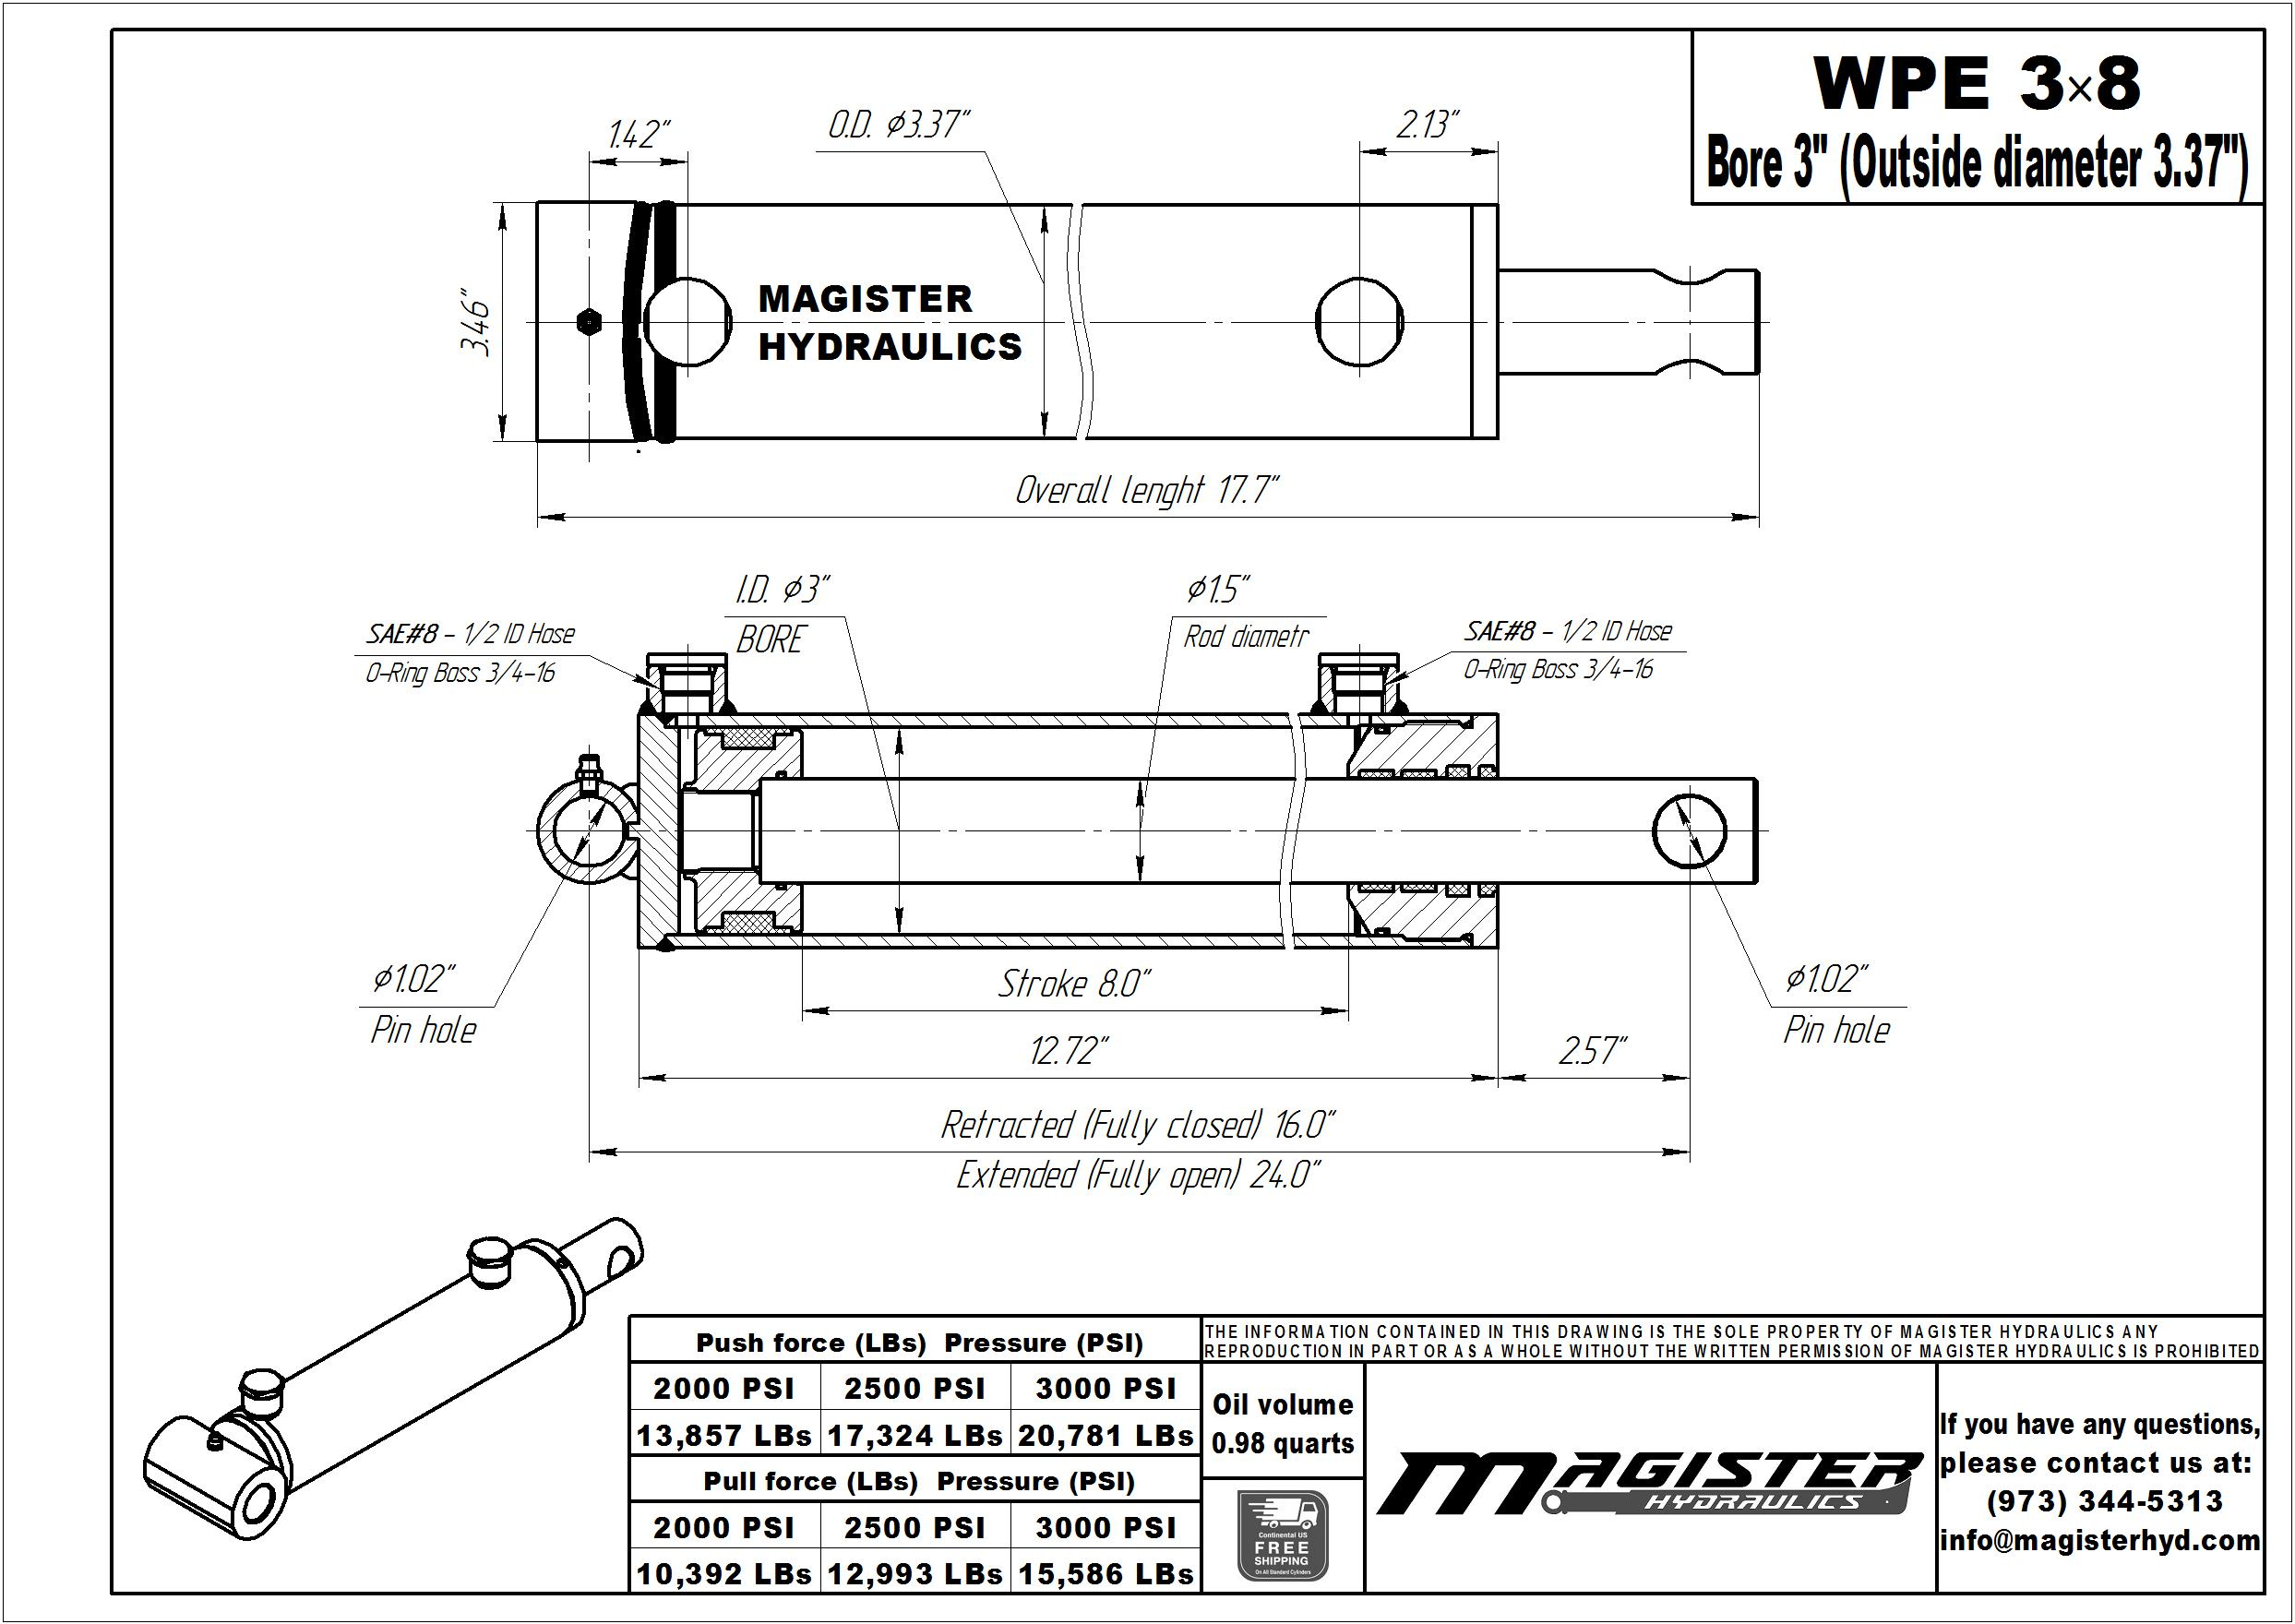 3 bore x 8 stroke hydraulic cylinder, welded pin eye double acting cylinder | Magister Hydraulics